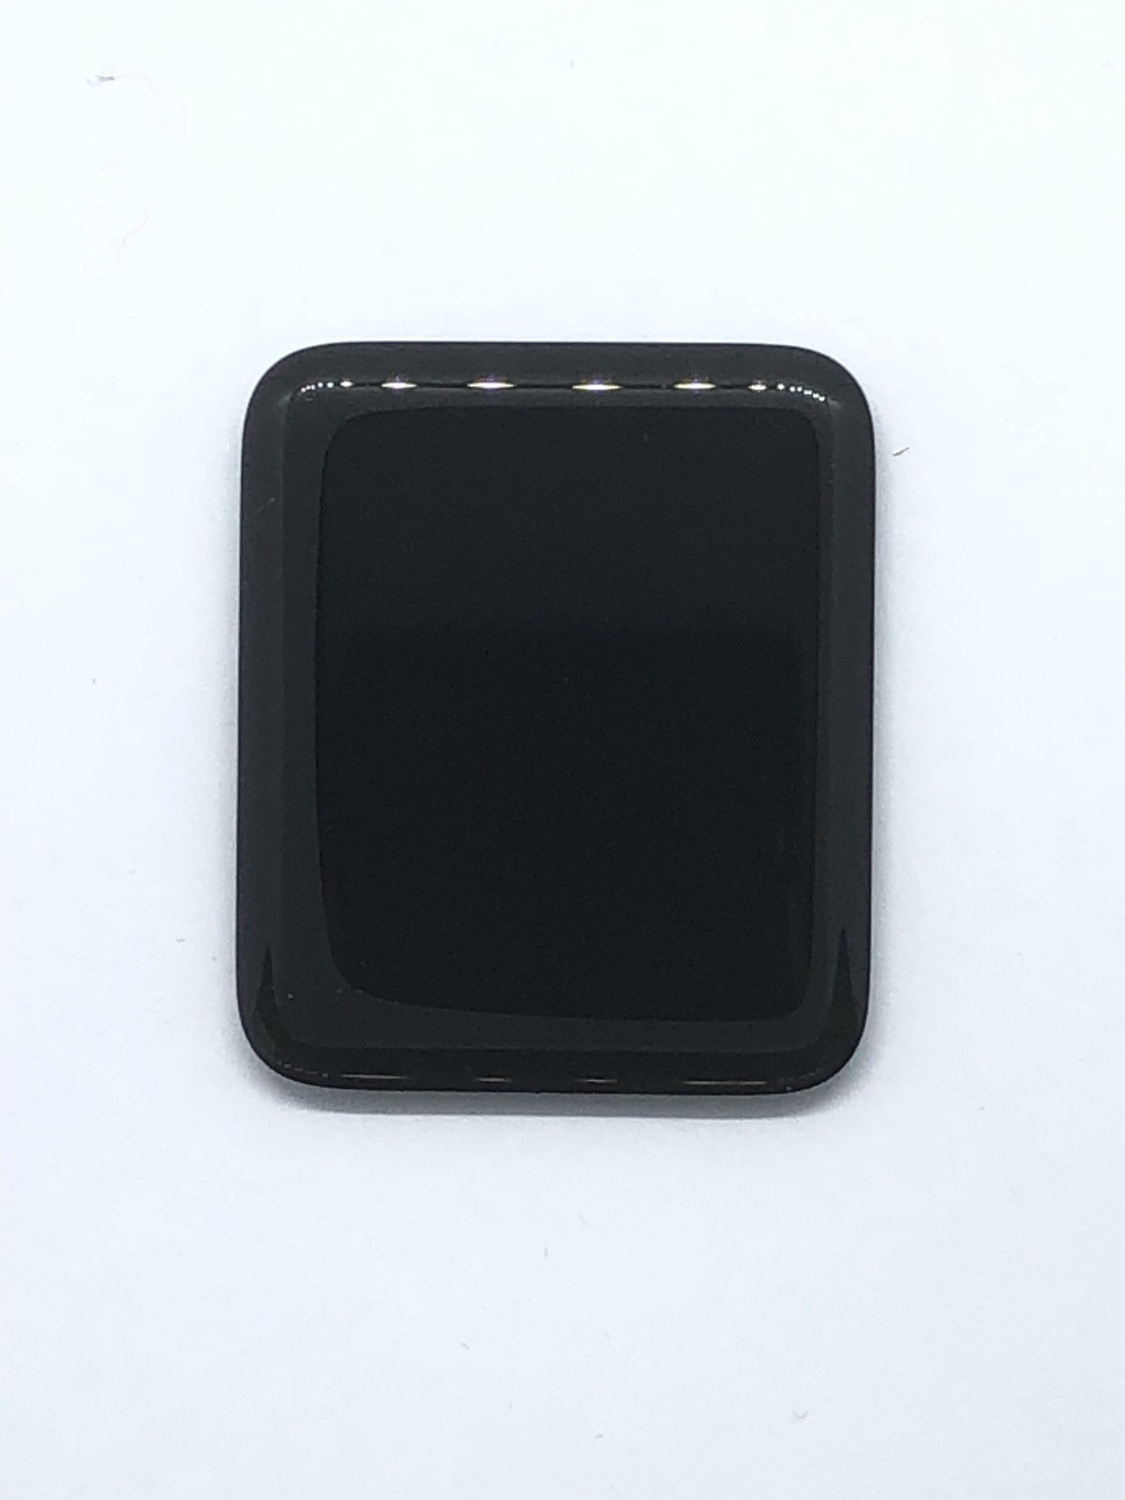 Apple Watch serial 1 OLED Screen Replacement